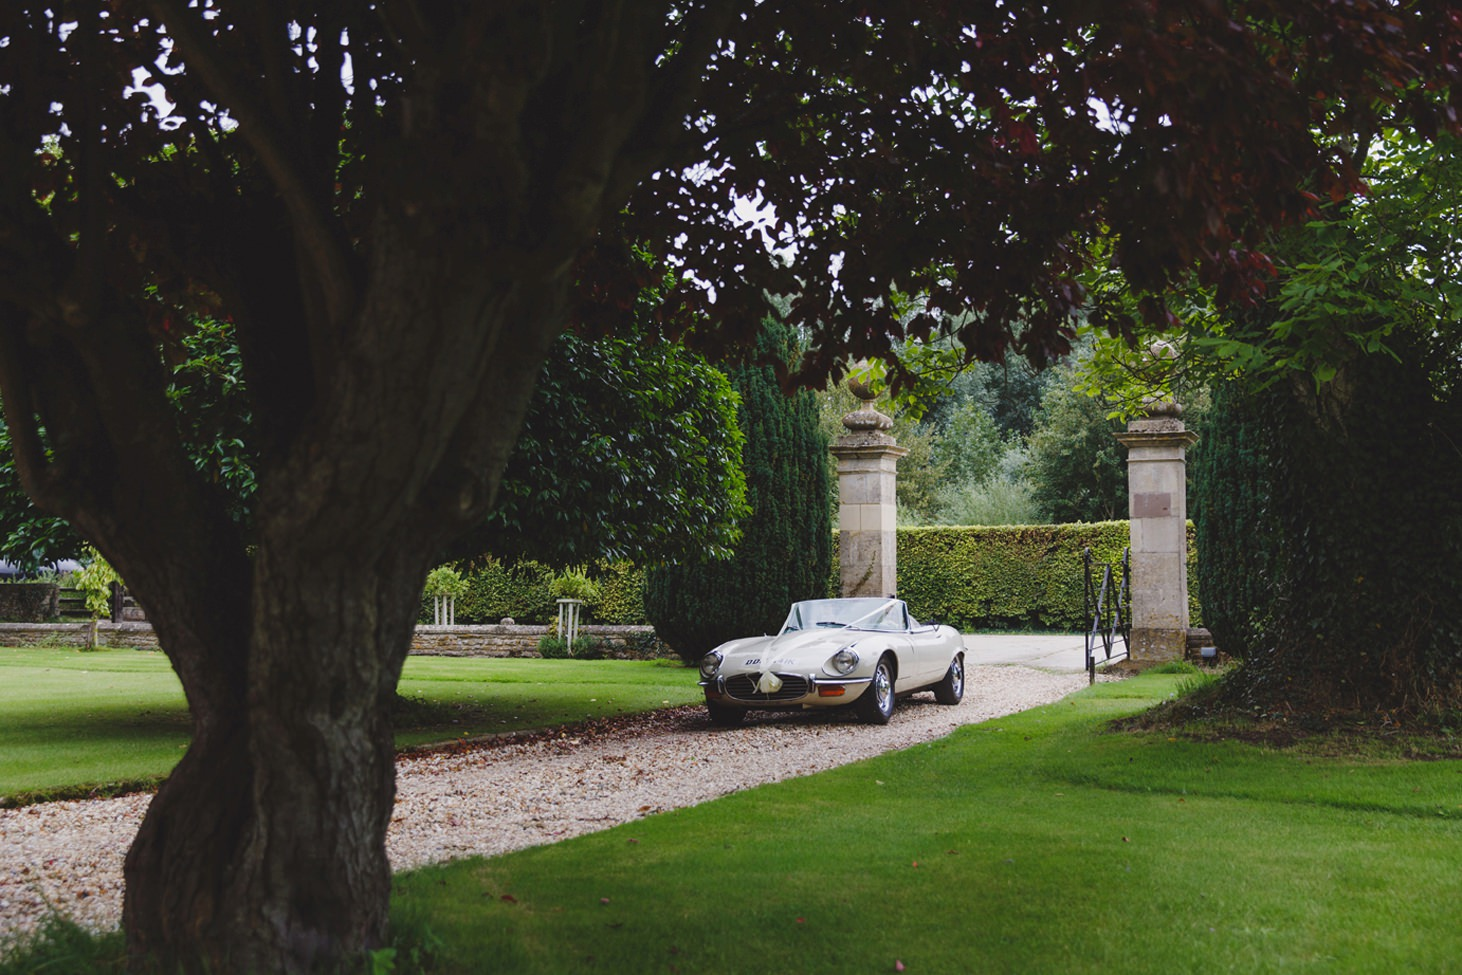 oxfordshire wedding photography bride and groom car arriving